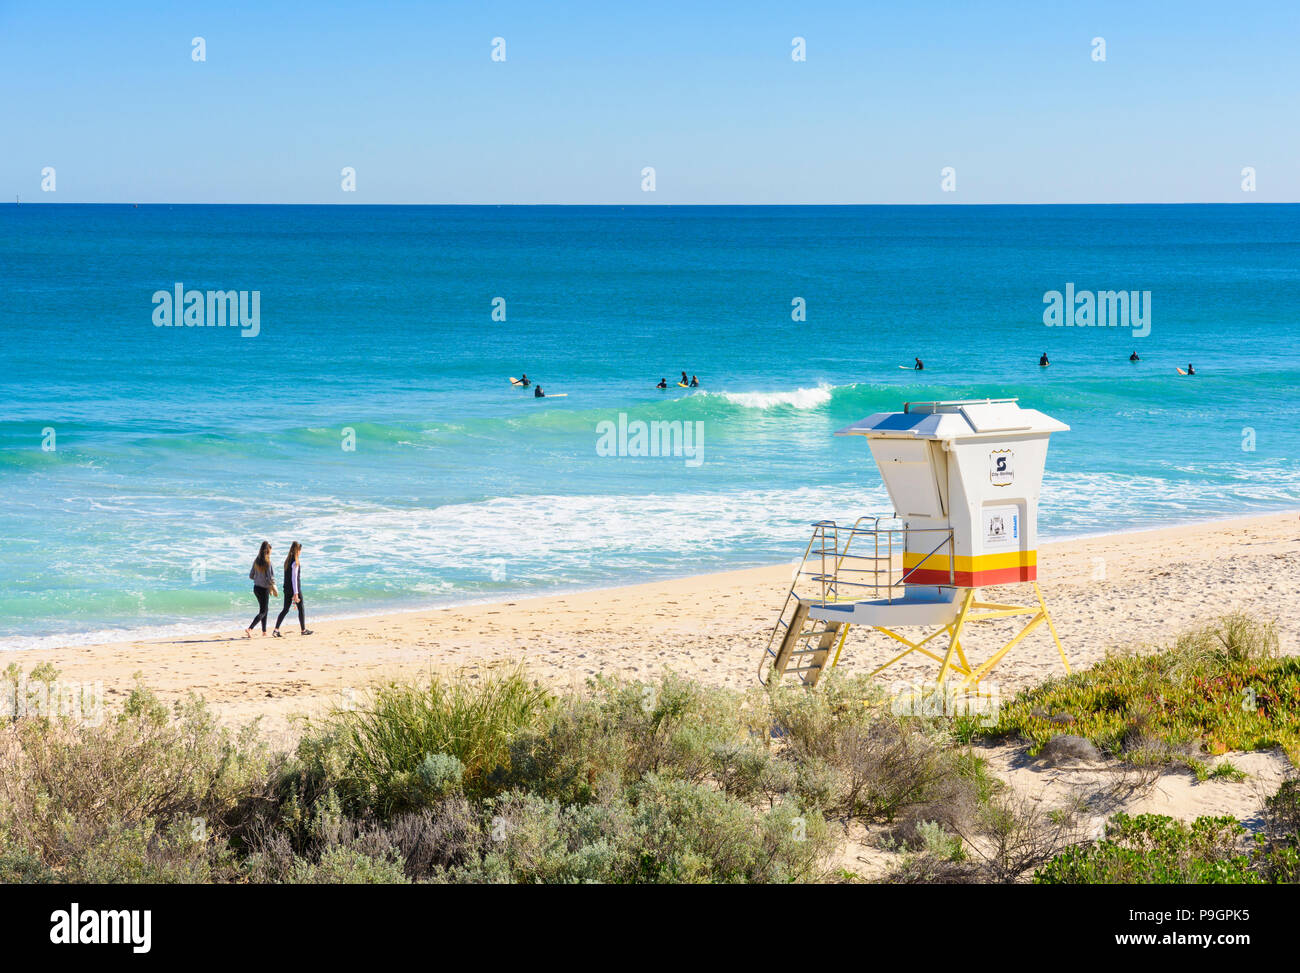 Surfers at Scarborough Beach, Perth, Western Australia - Stock Image